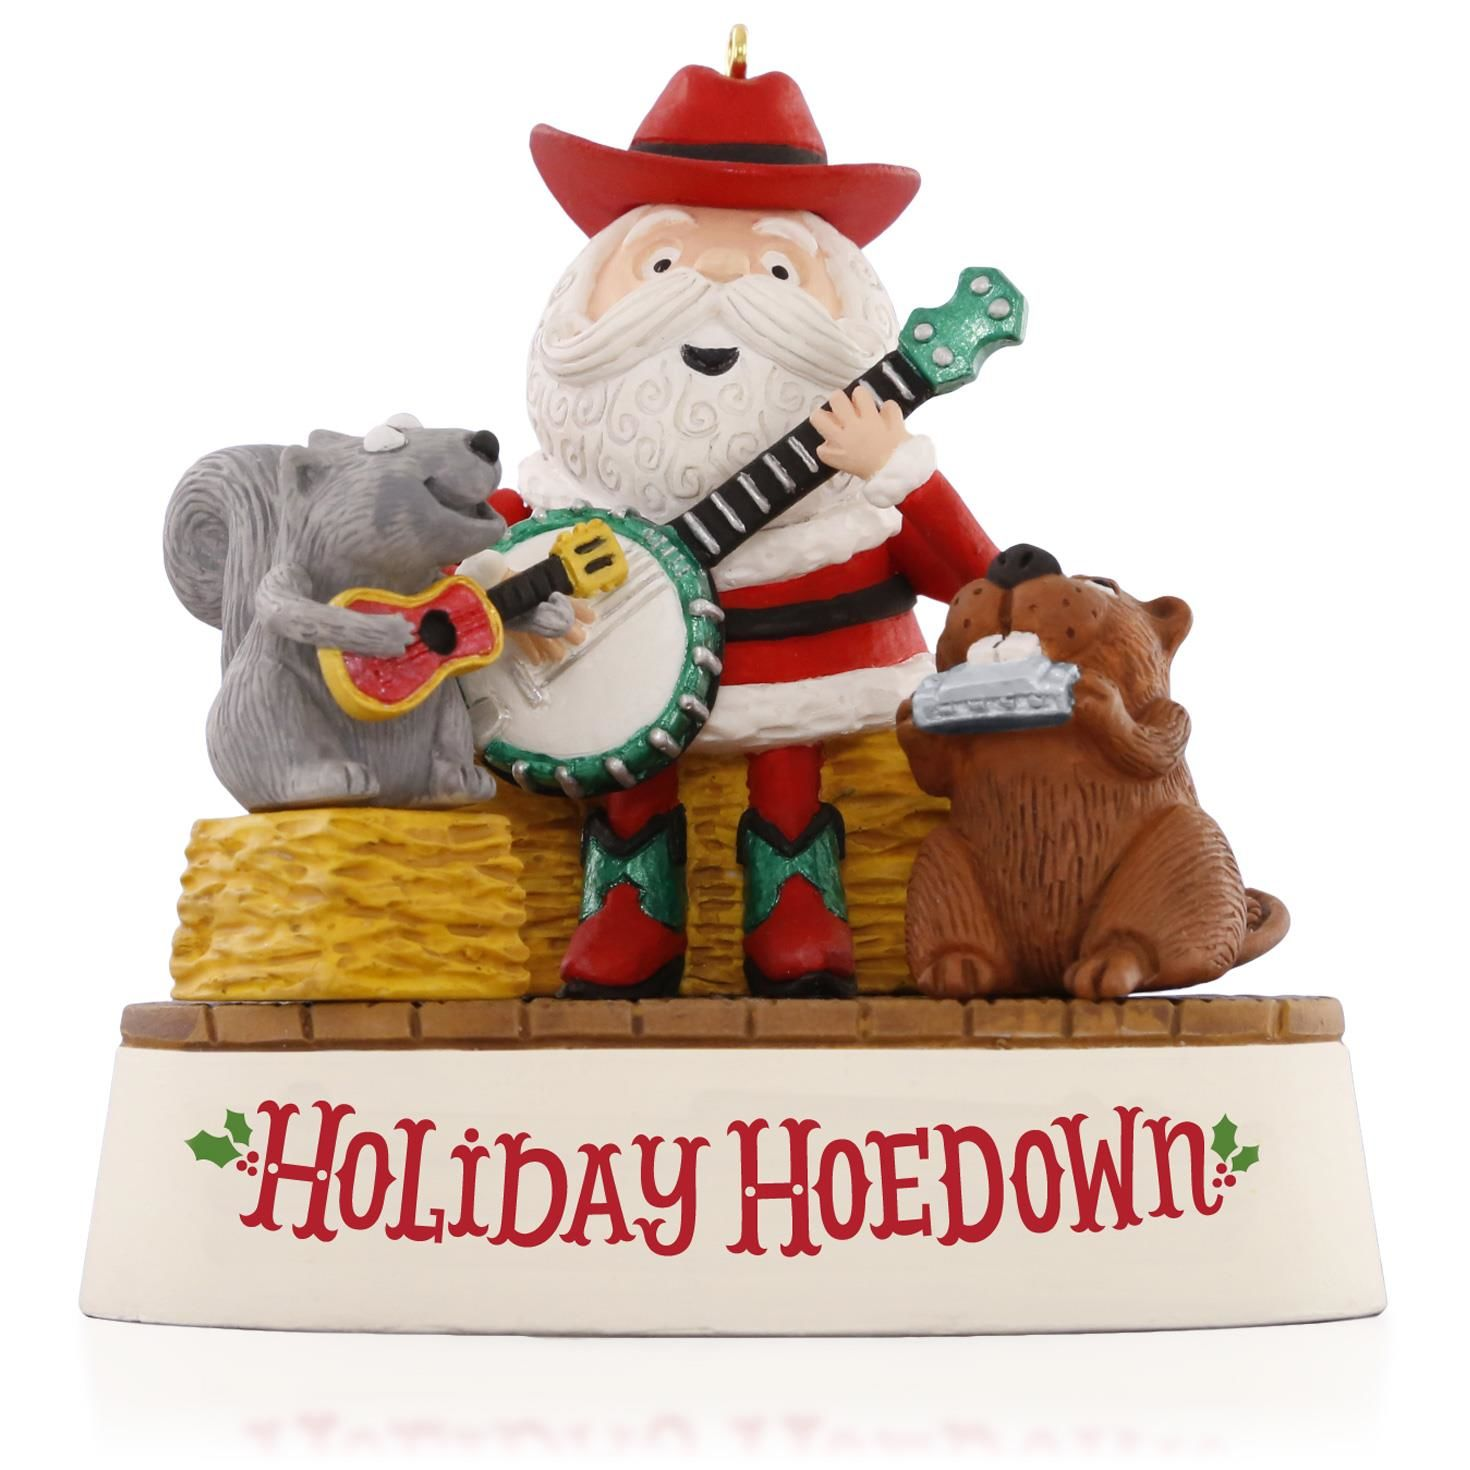 Holiday hoedown hallmark keepsake ornament hooked